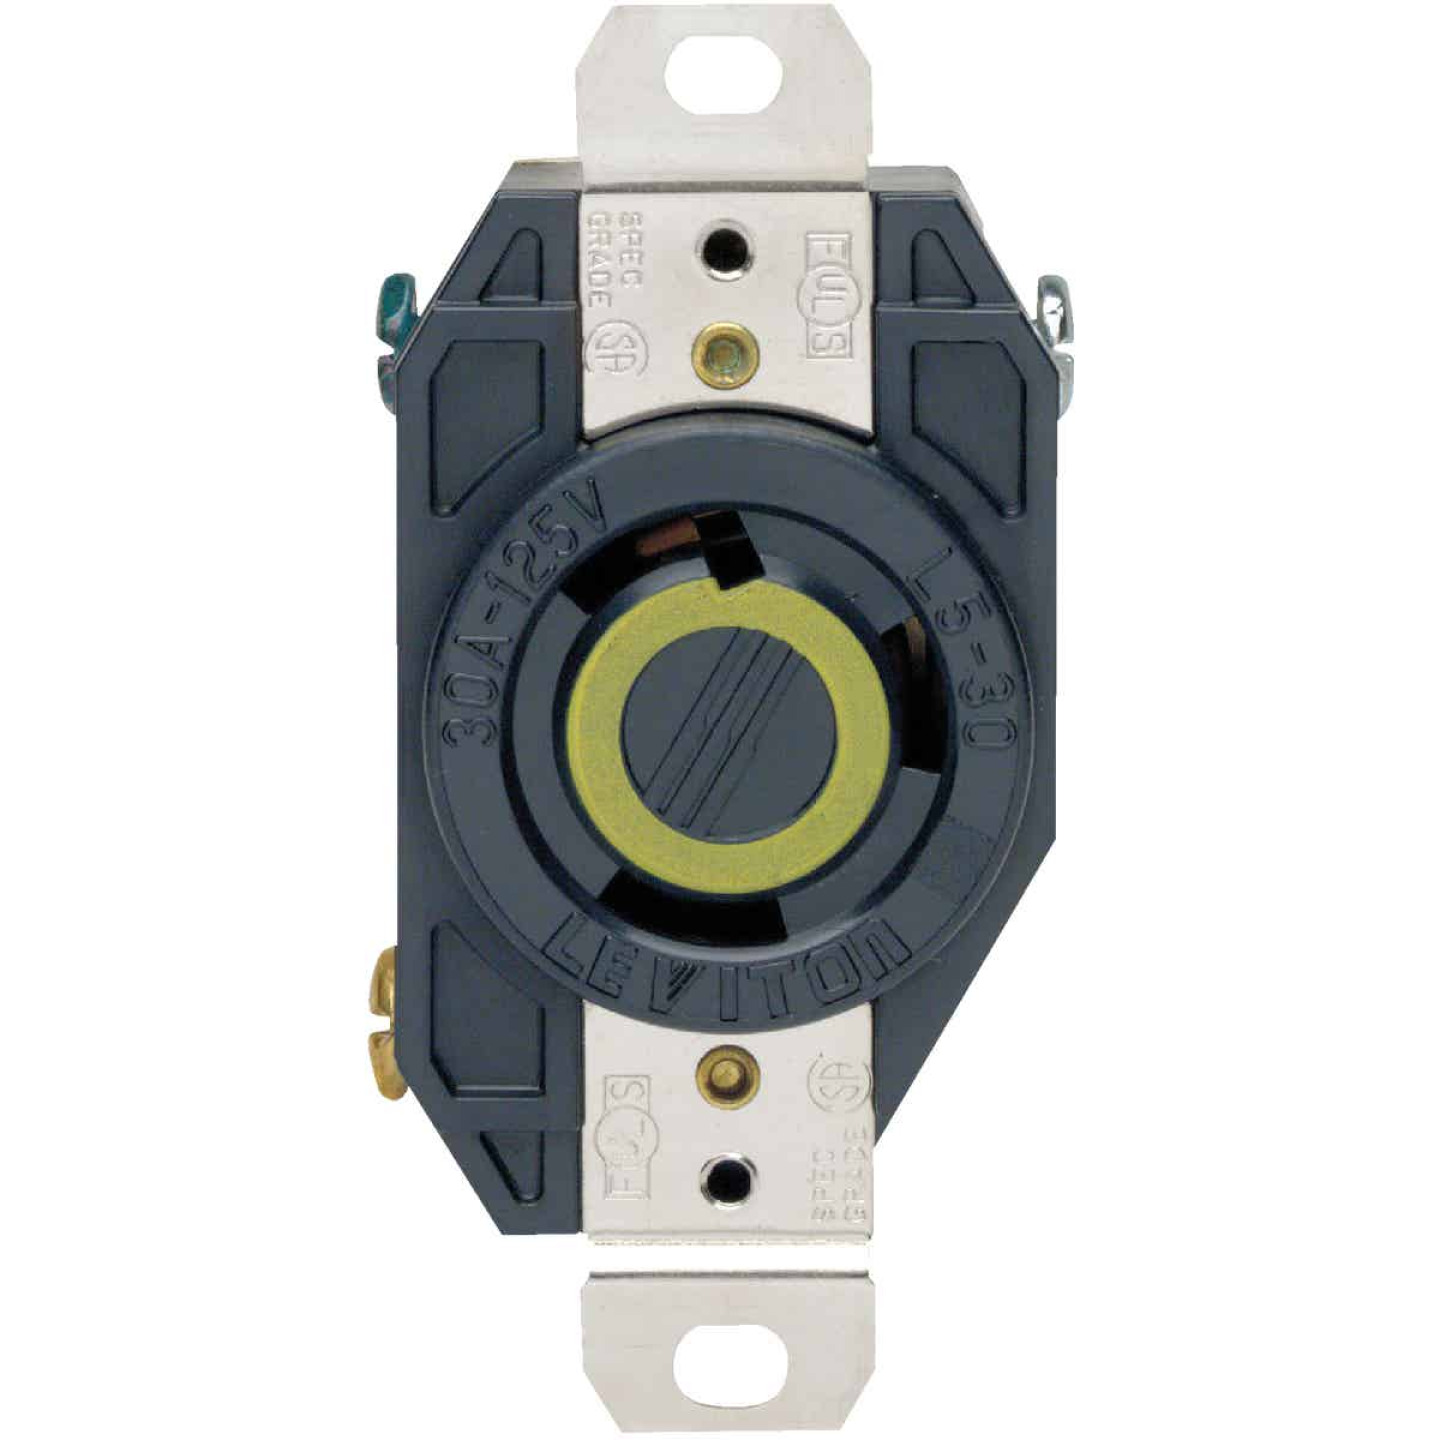 Leviton 30A 125V Black Industrial Grade L5-30R Locking Outlet Receptacle Image 2